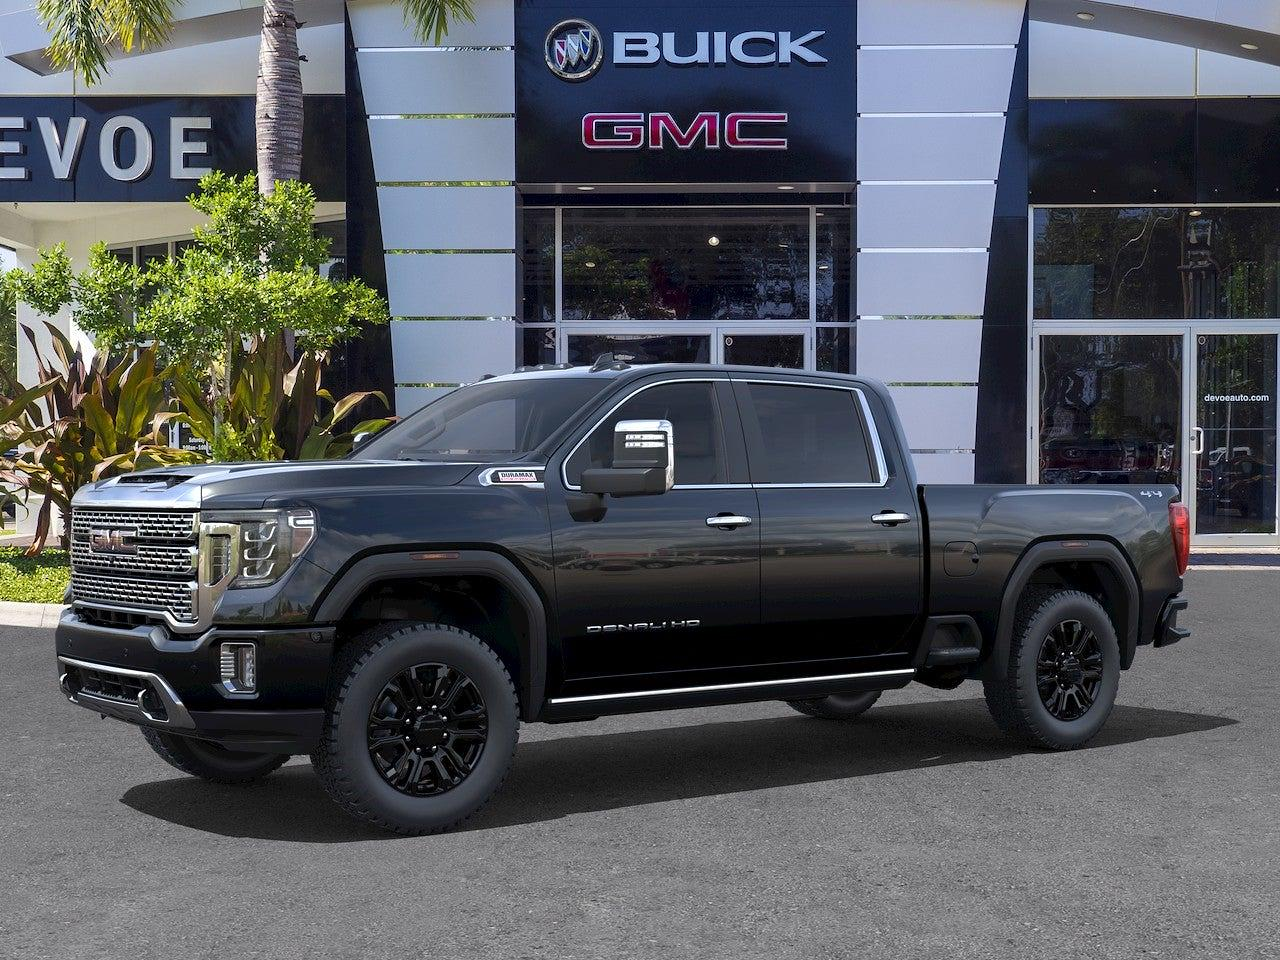 2021 GMC Sierra 2500 Crew Cab 4x4, Pickup #T21308W - photo 23